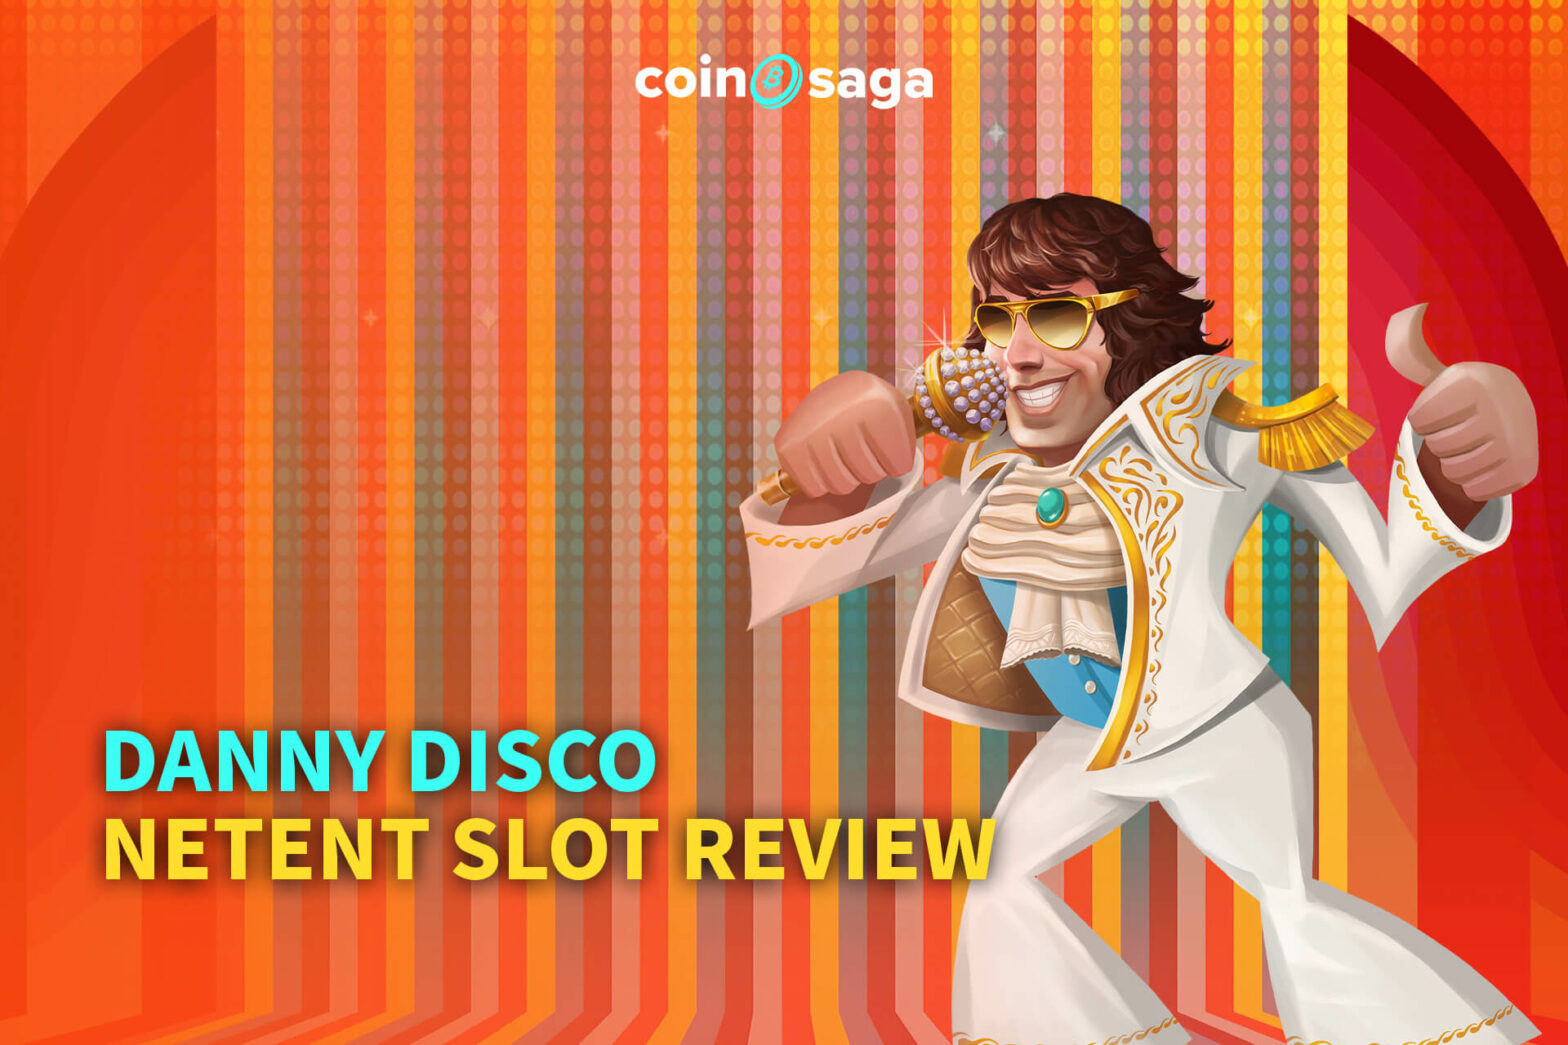 Disco Danny slot review